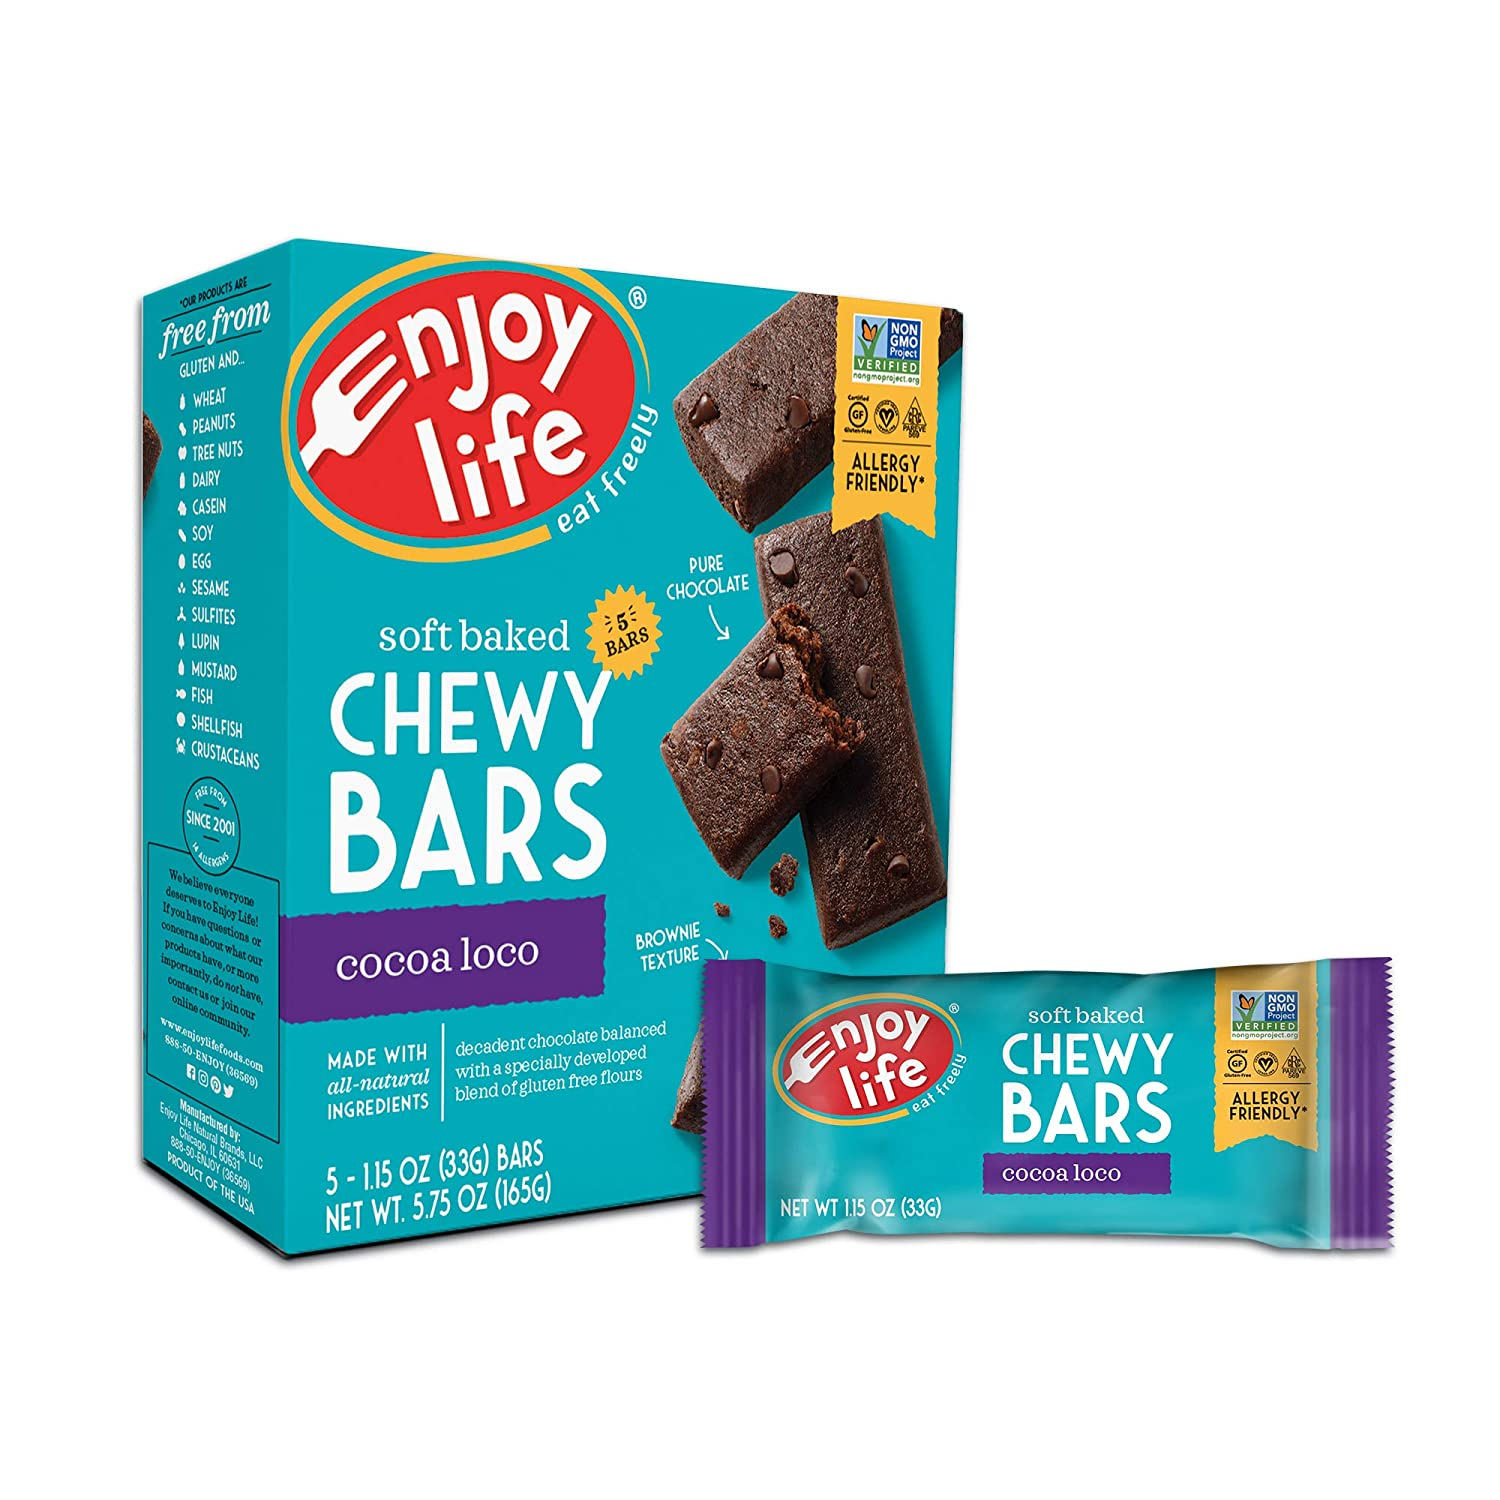 Enjoy Life Chewy Bars, Cocoa Loco Nut Free Bars, Soy Free, Dairy Free, Non GMO, Gluten Free, 6 Boxes (30 Bars Total)